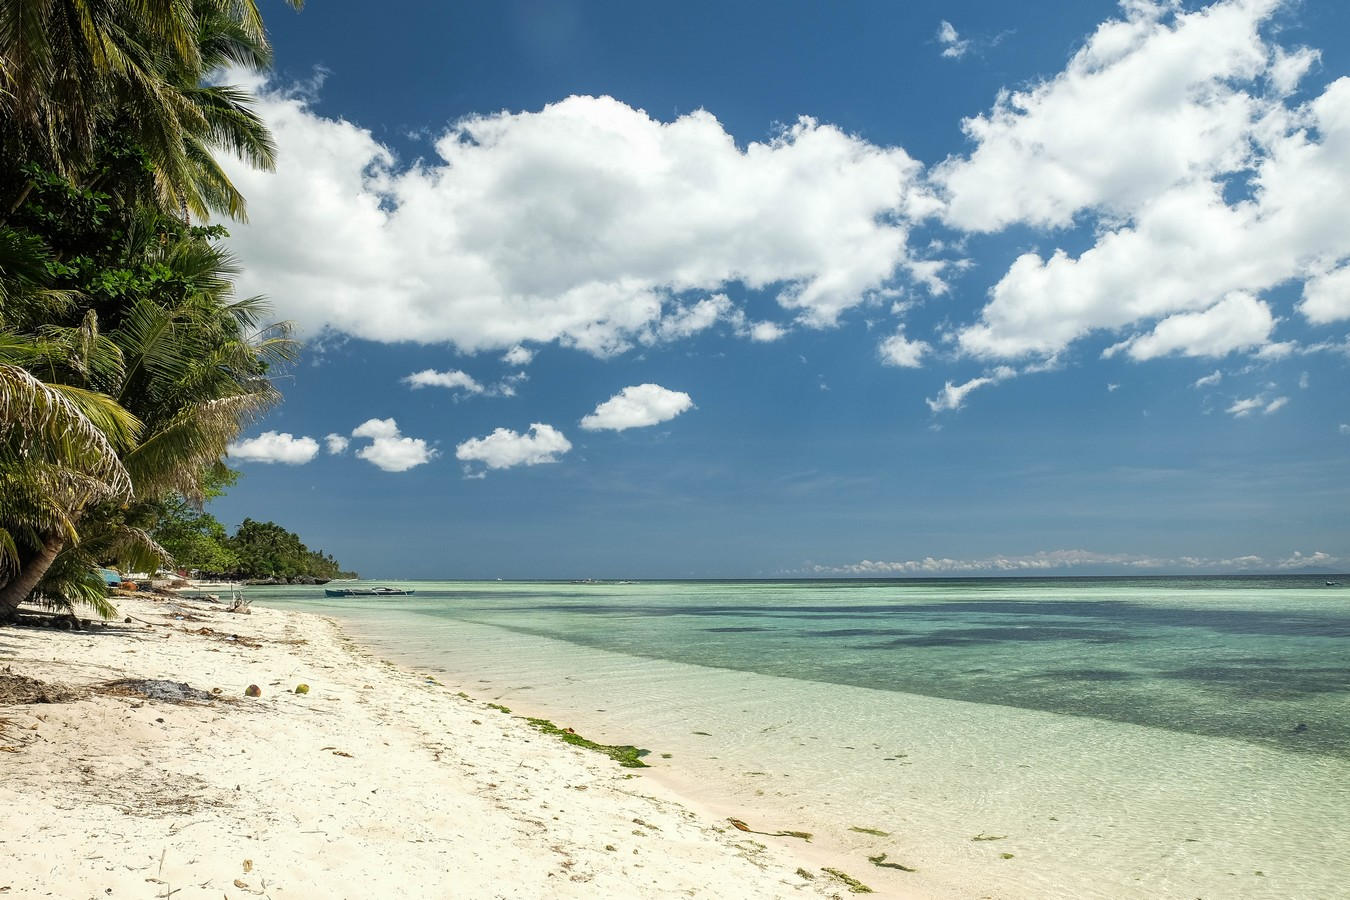 Plage de sable blanc à Siquijor aux Philippines